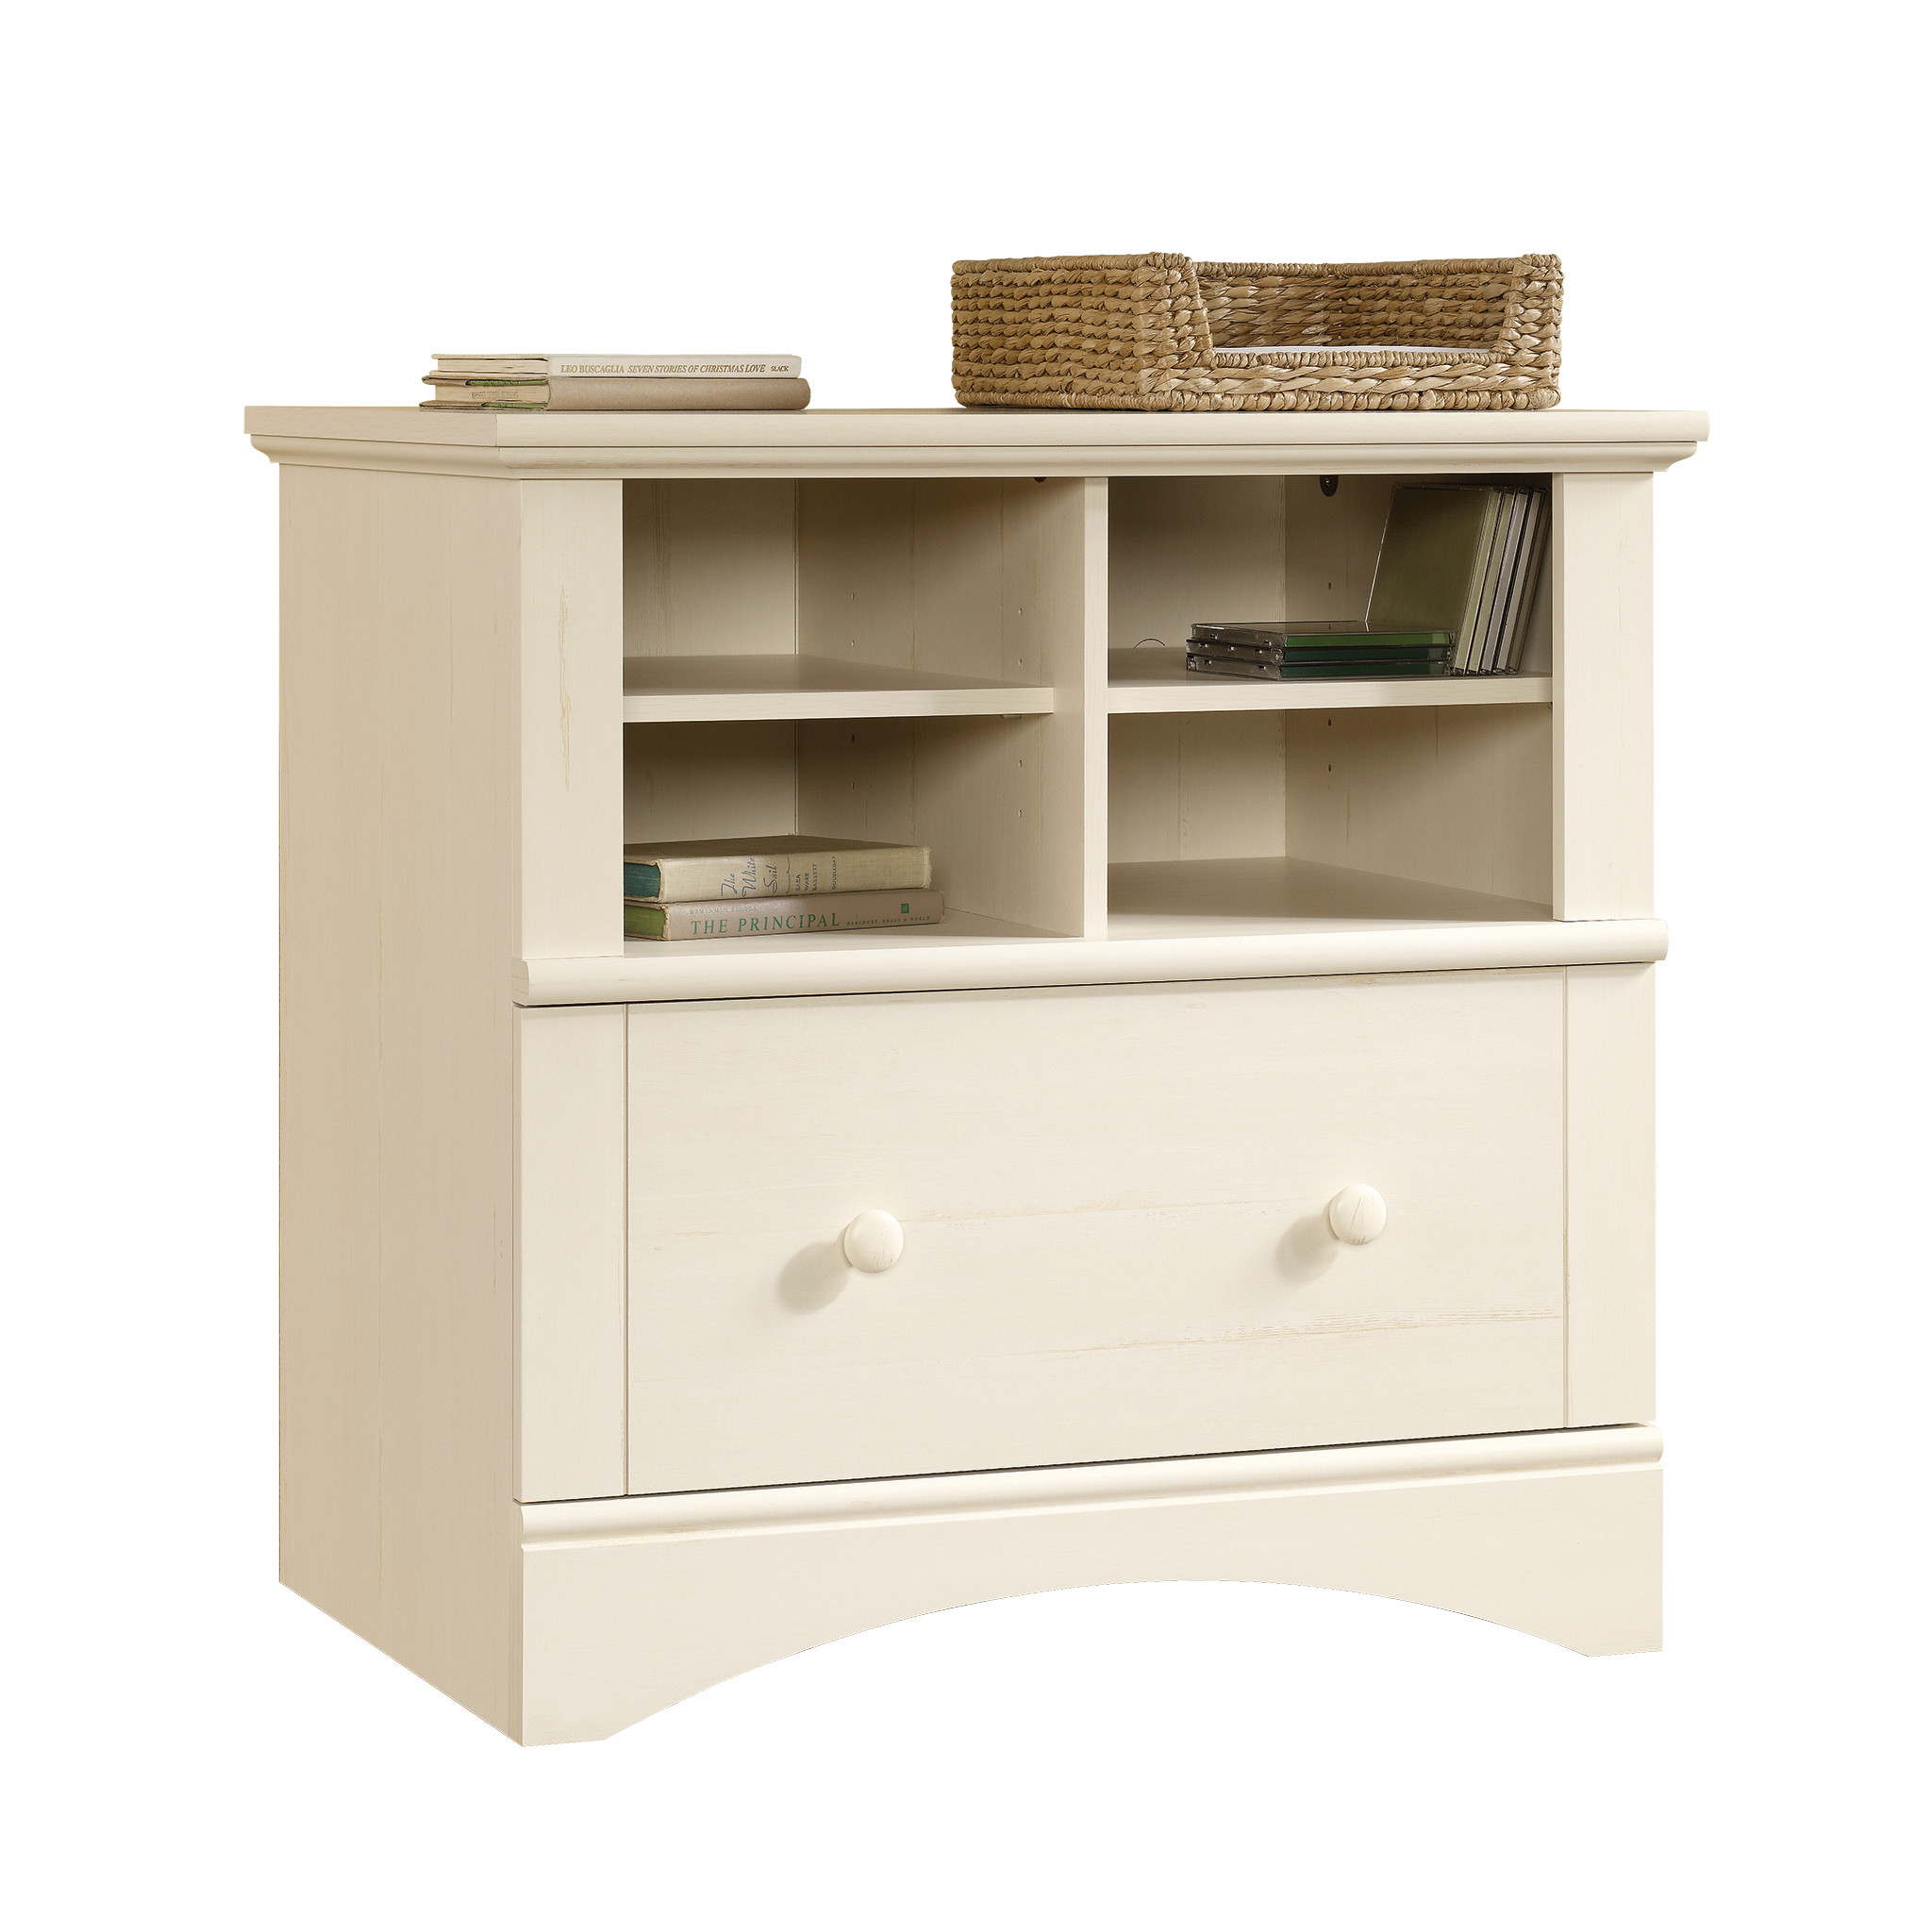 Best ideas about Walmart Filing Cabinet . Save or Pin File Cabinets Walmart Now.